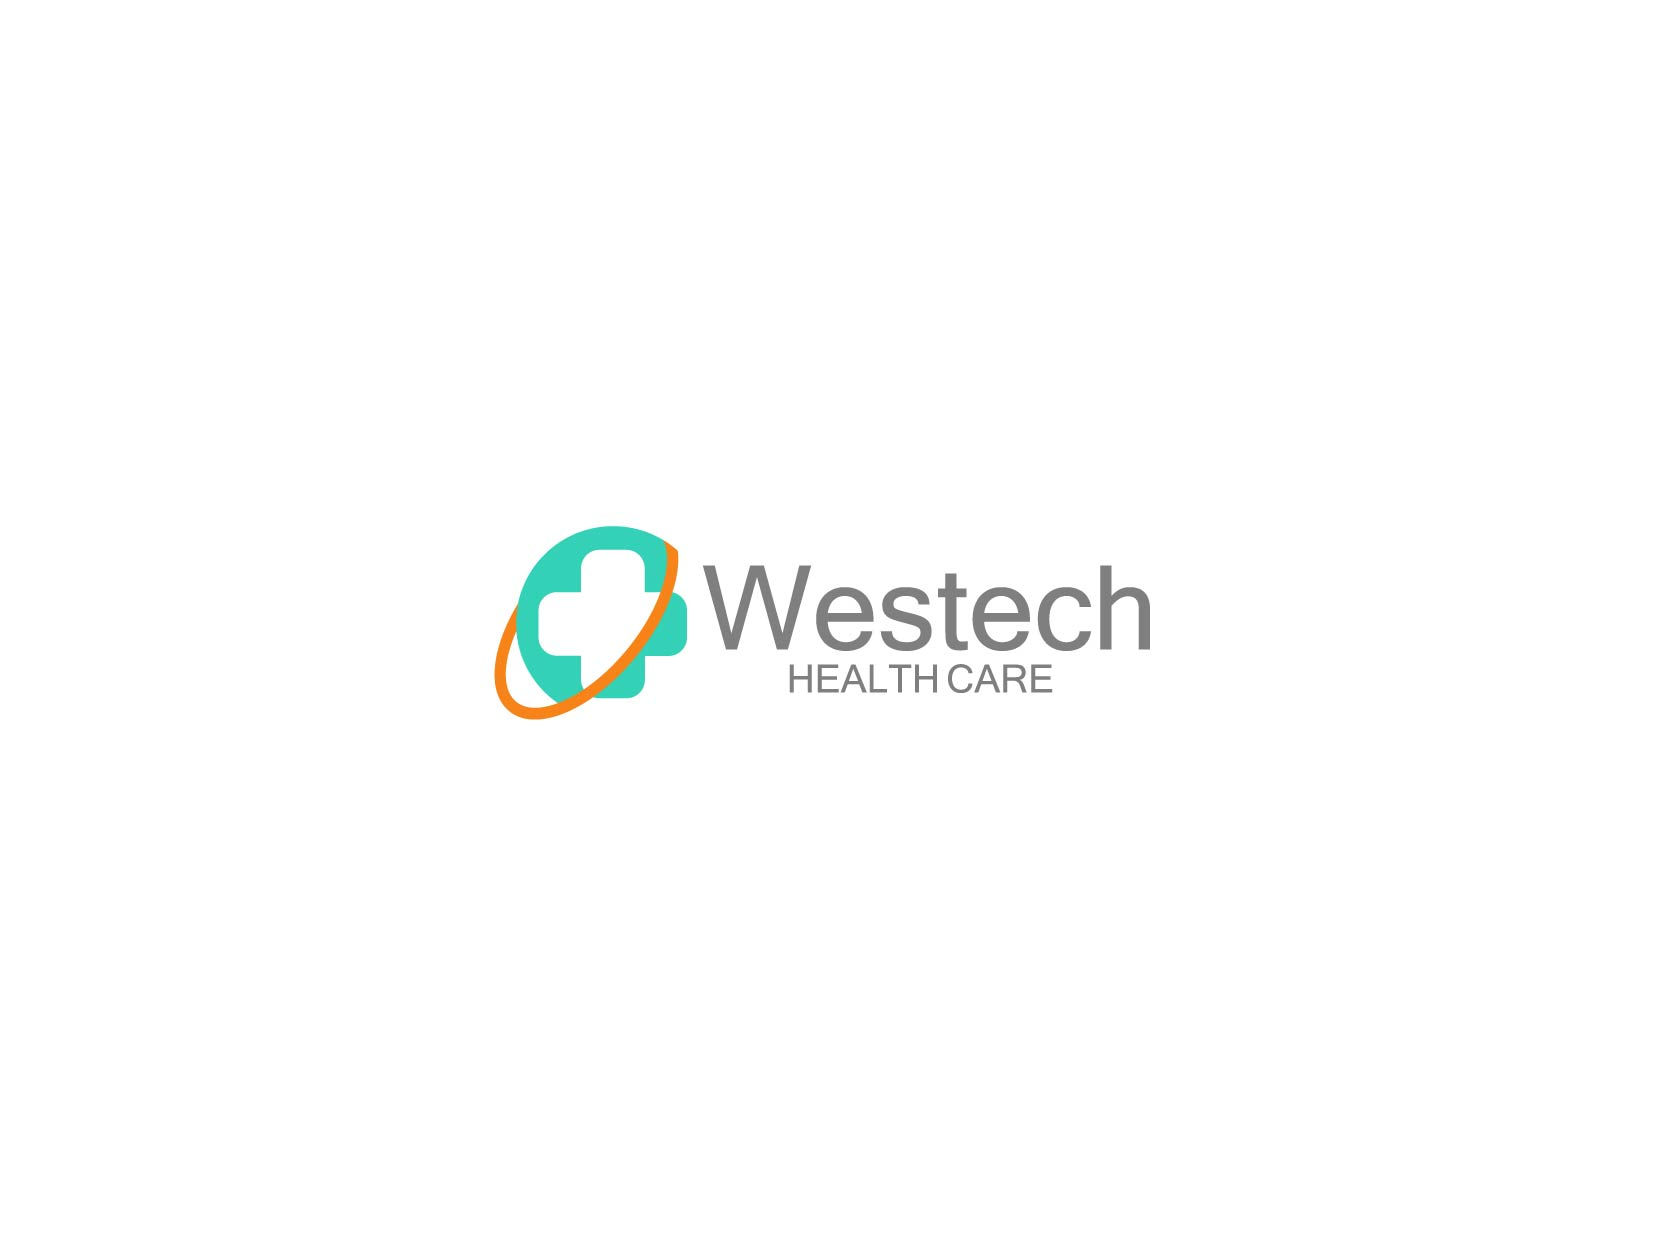 Logo Design by Osi Indra - Entry No. 79 in the Logo Design Contest Creative Logo Design for Westech Health Care Ltd..